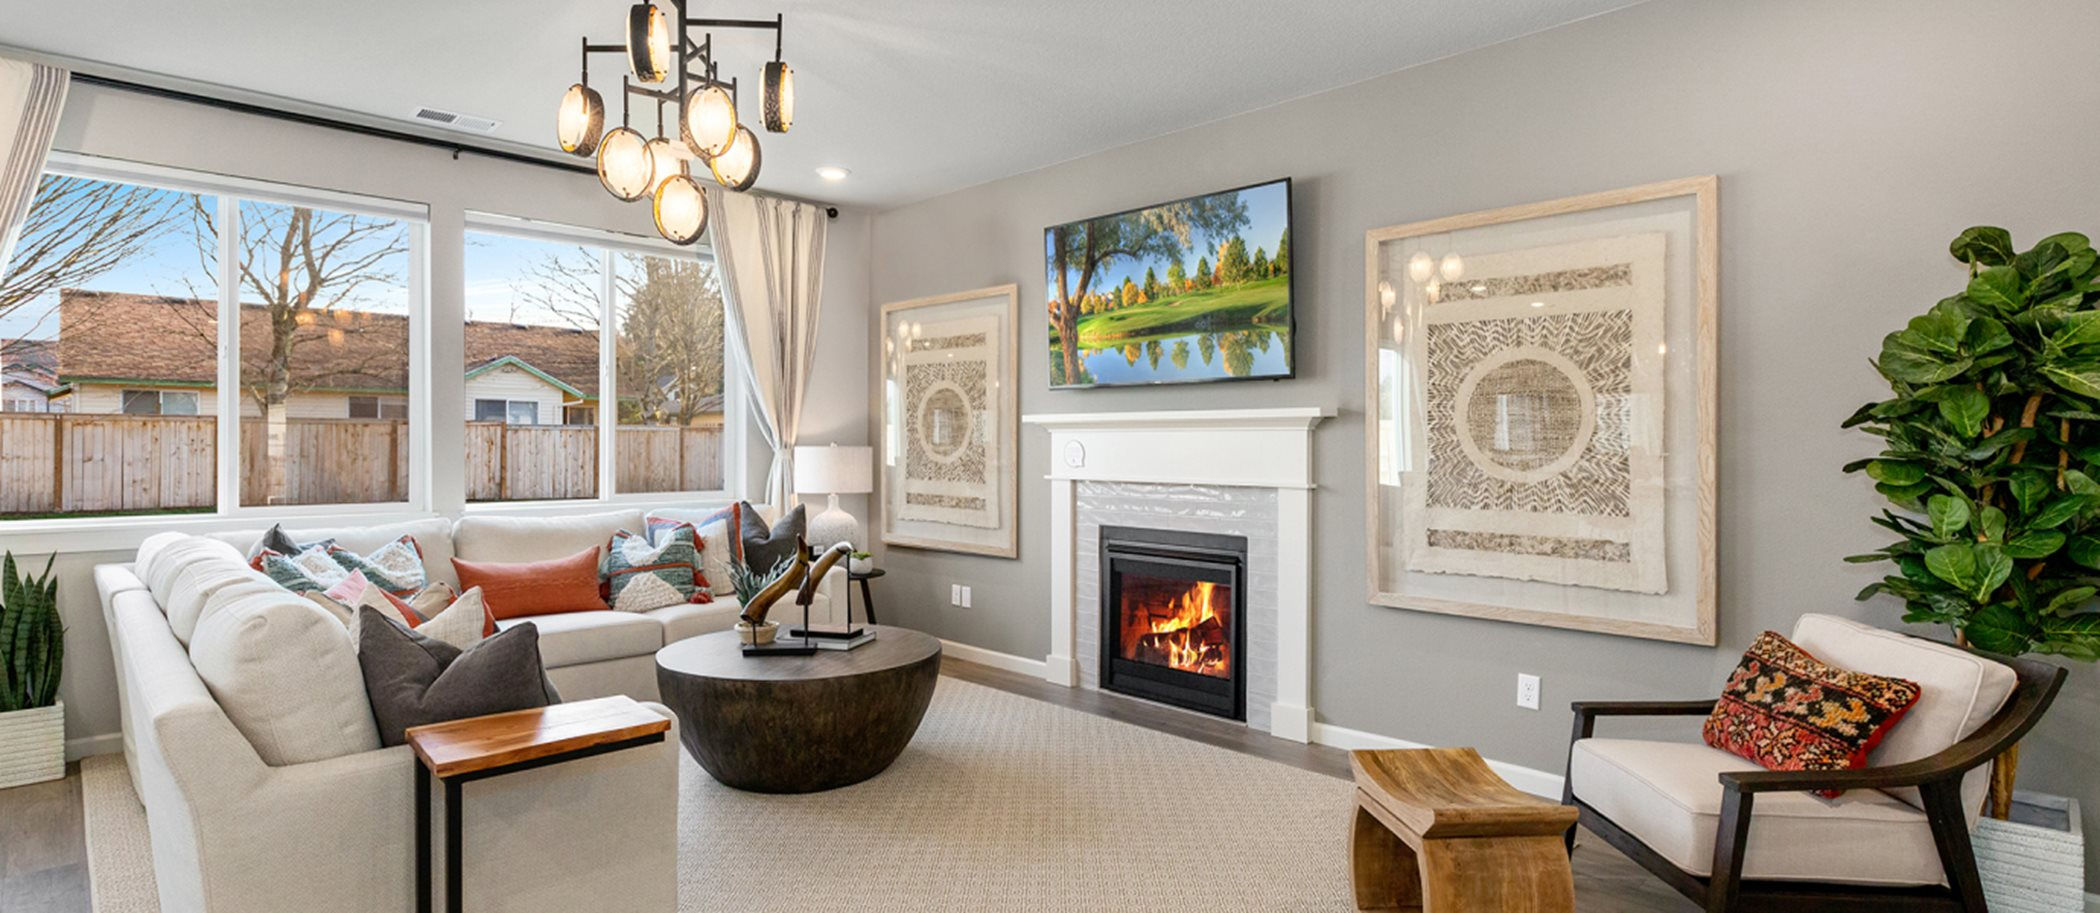 Green Mountain by Lennar Cypress Room